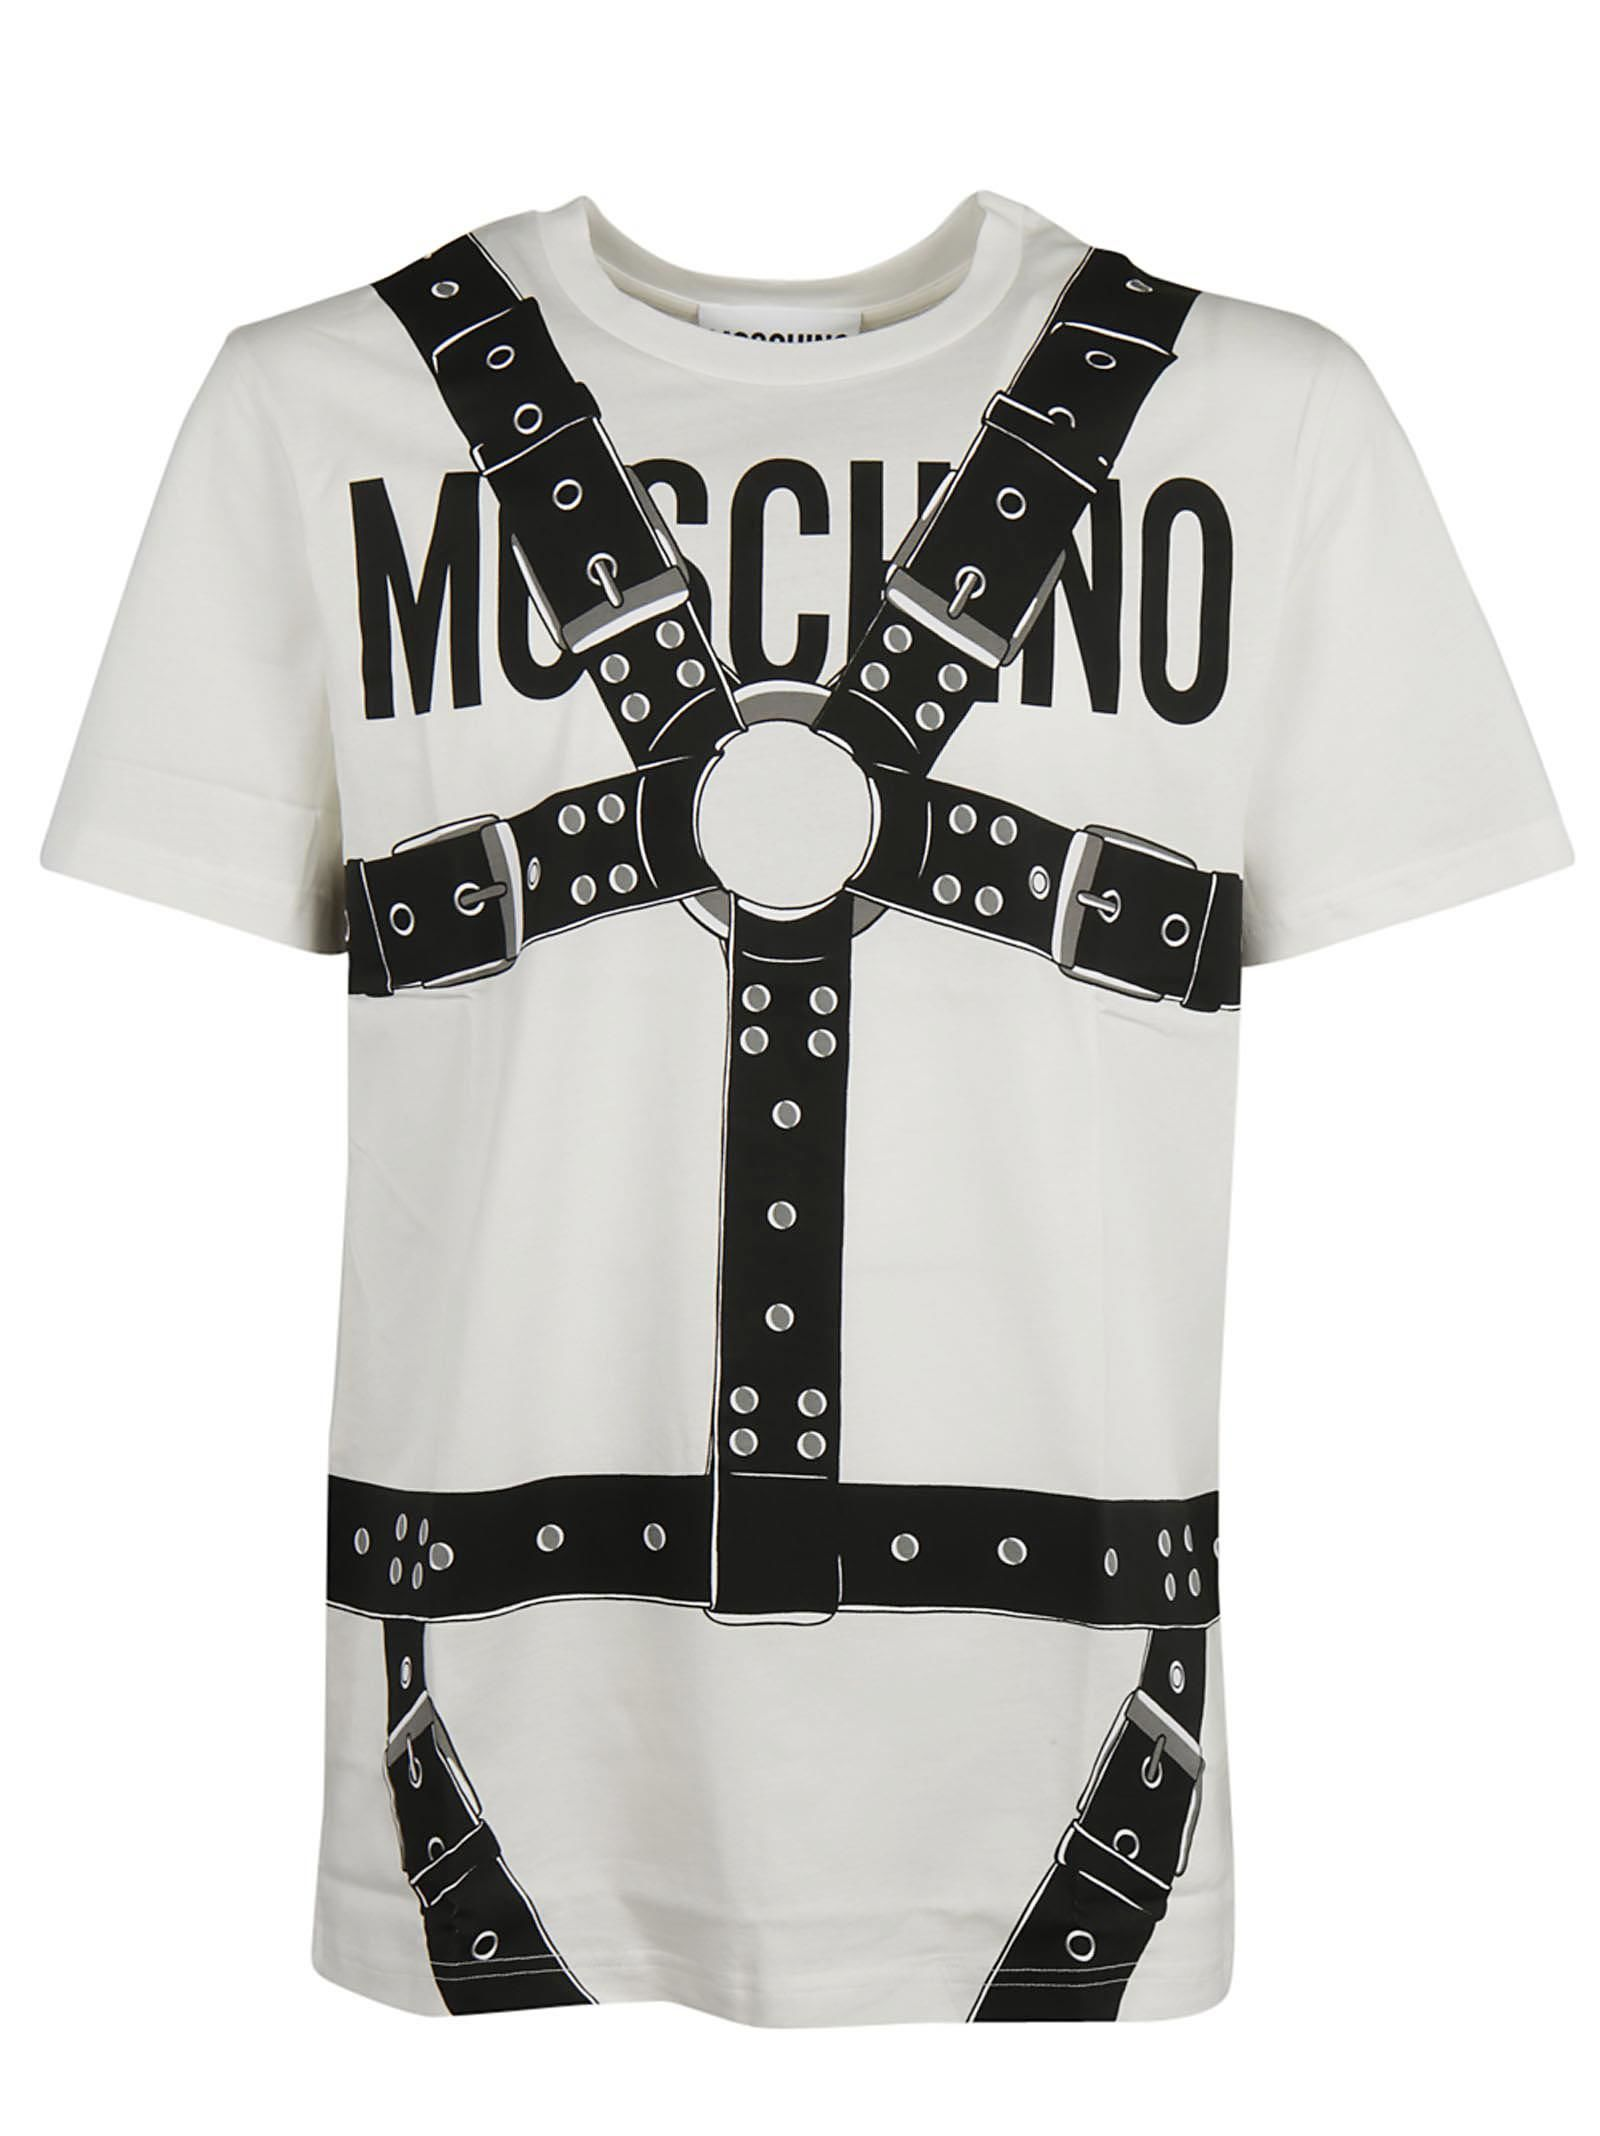 MOSCHINO MOSCHINO LOGO AND HARNESS PRINT T-SHIRT.  moschino  cloth ... 881e2dba0f4